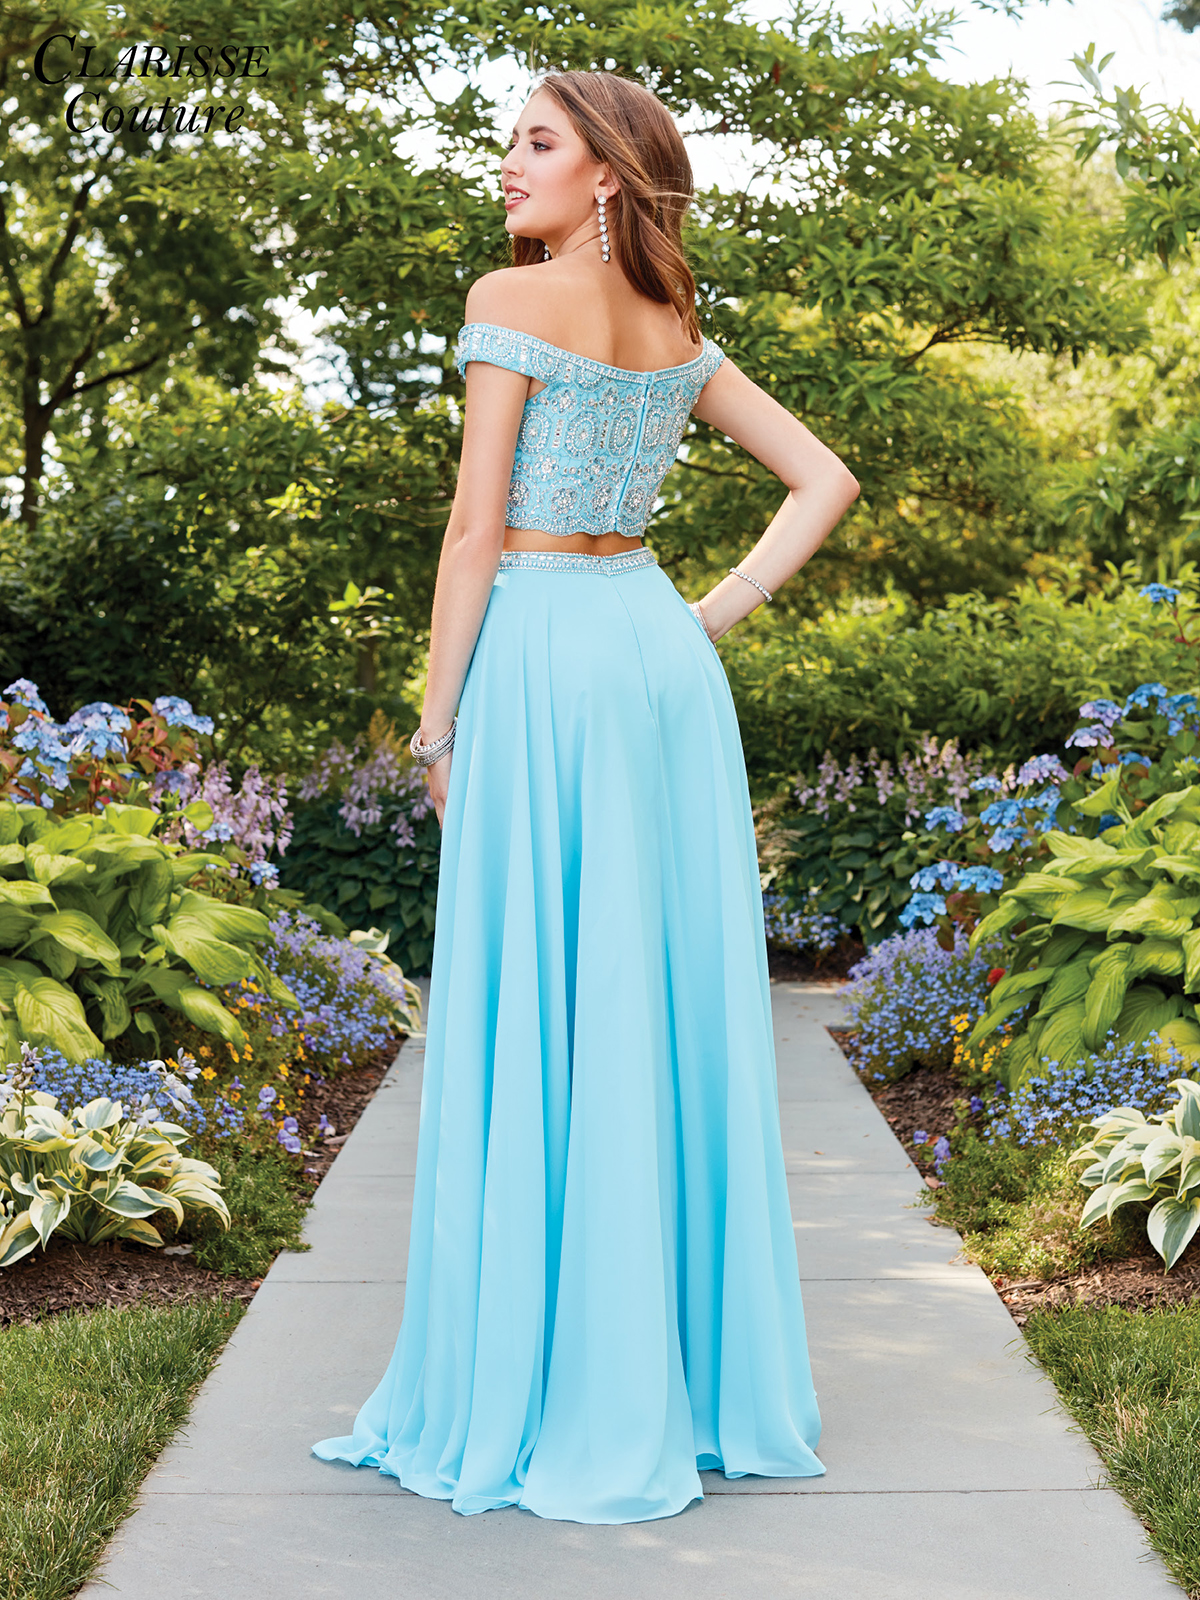 2018 Prom Dress Clarisse 4938 | Promgirl.net